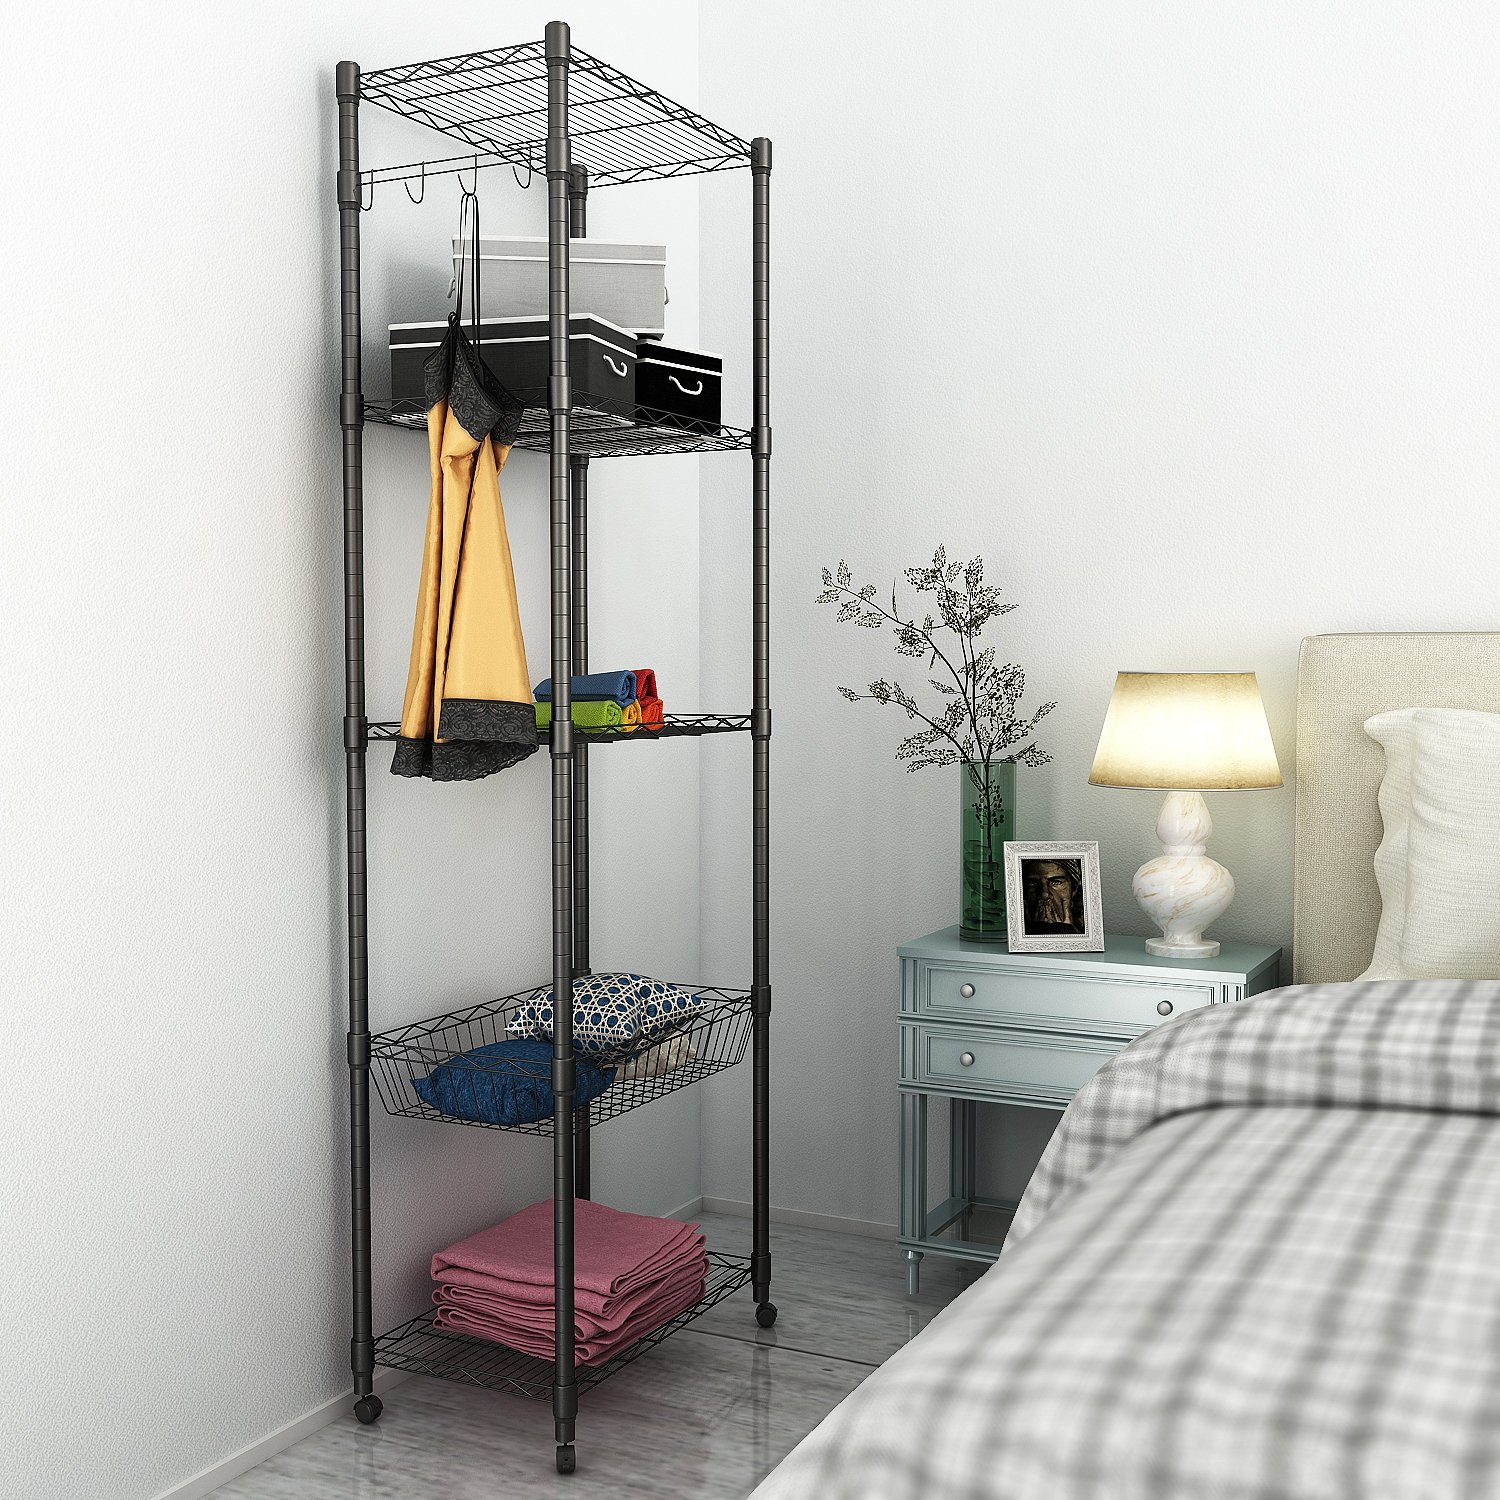 5 Tier Steel Wire Shelving with Wheels, Shelving Storage Organizer Rack for Kitchen Bathroom Balcony Living Room 71inch - Black [US STOCK] by ferty (Image #2)